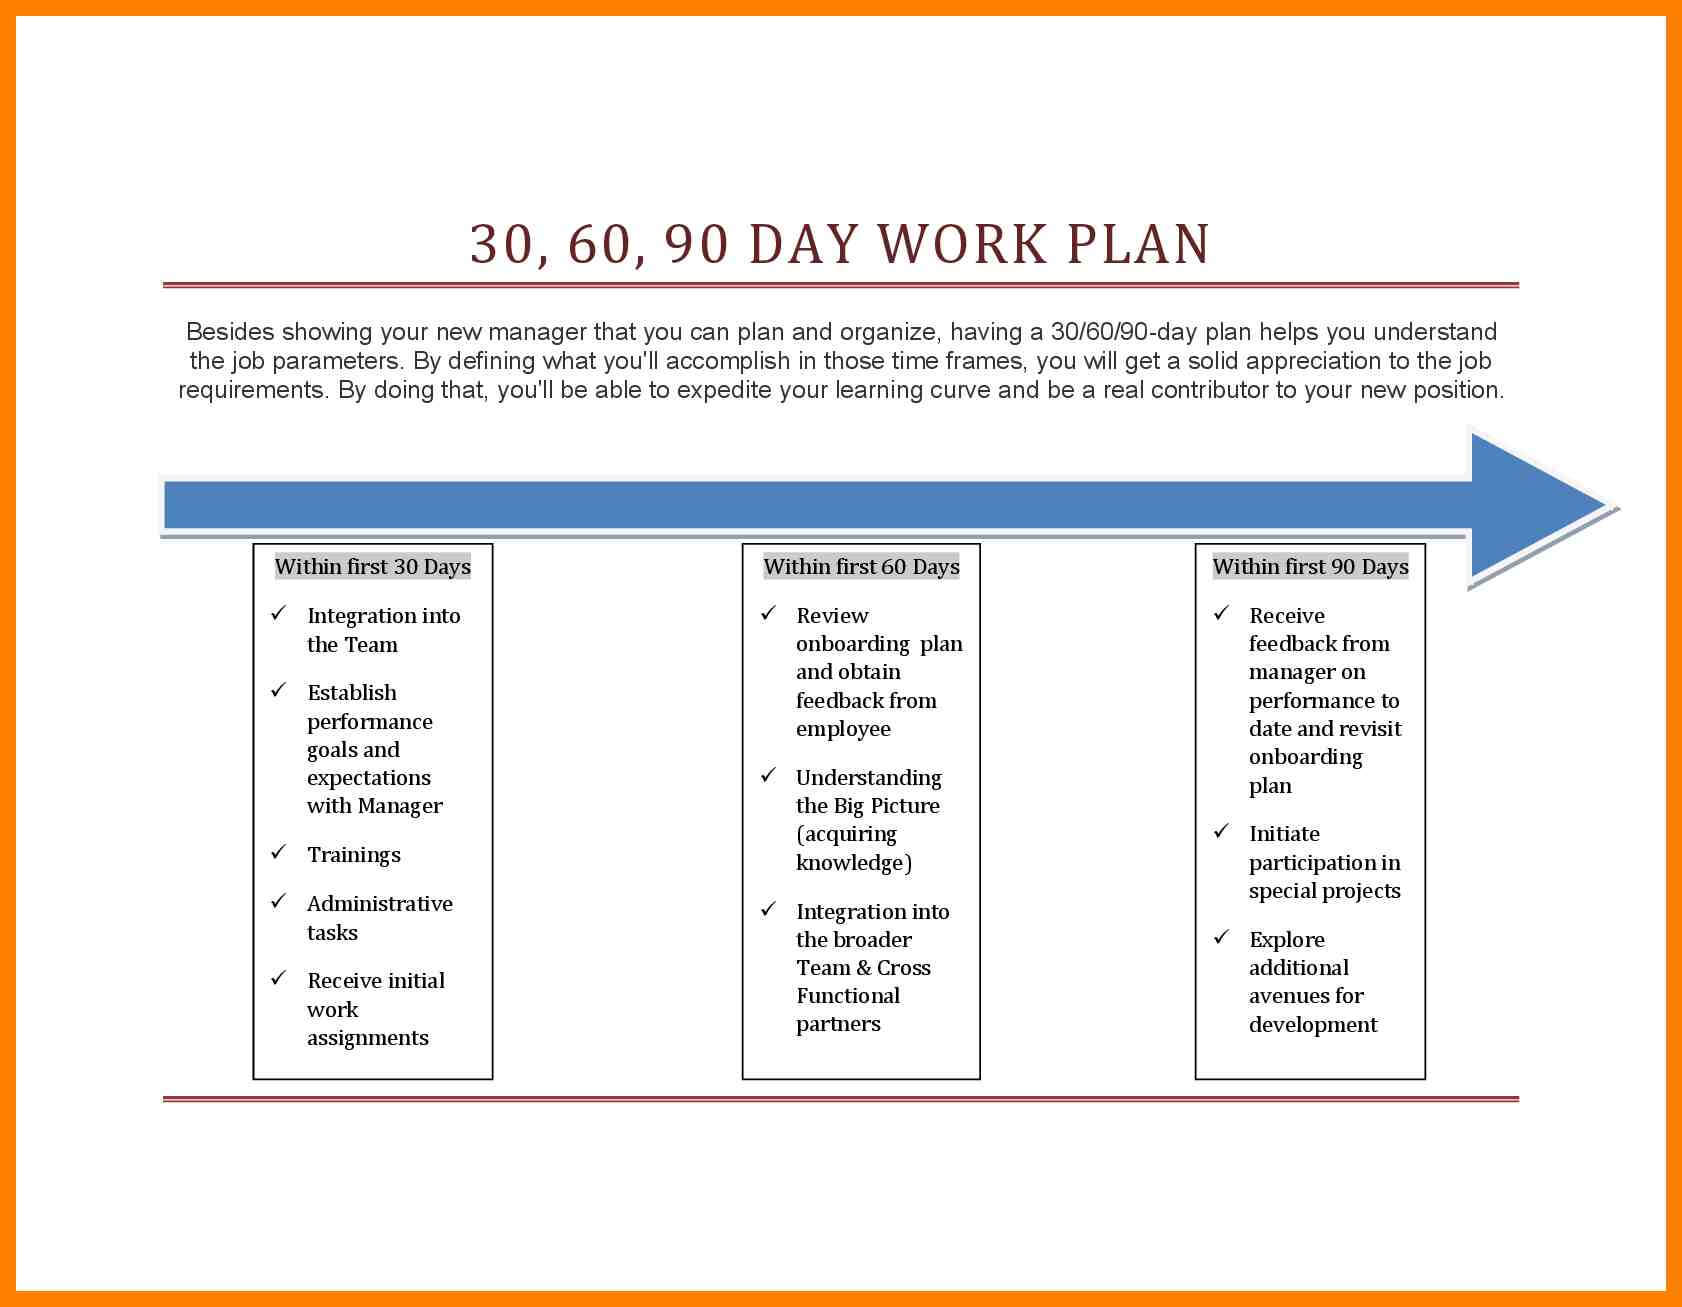 10+ 30 60 90 Day Plan Template Word | Time Table Chart With Regard To 30 60 90 Day Plan Template Word